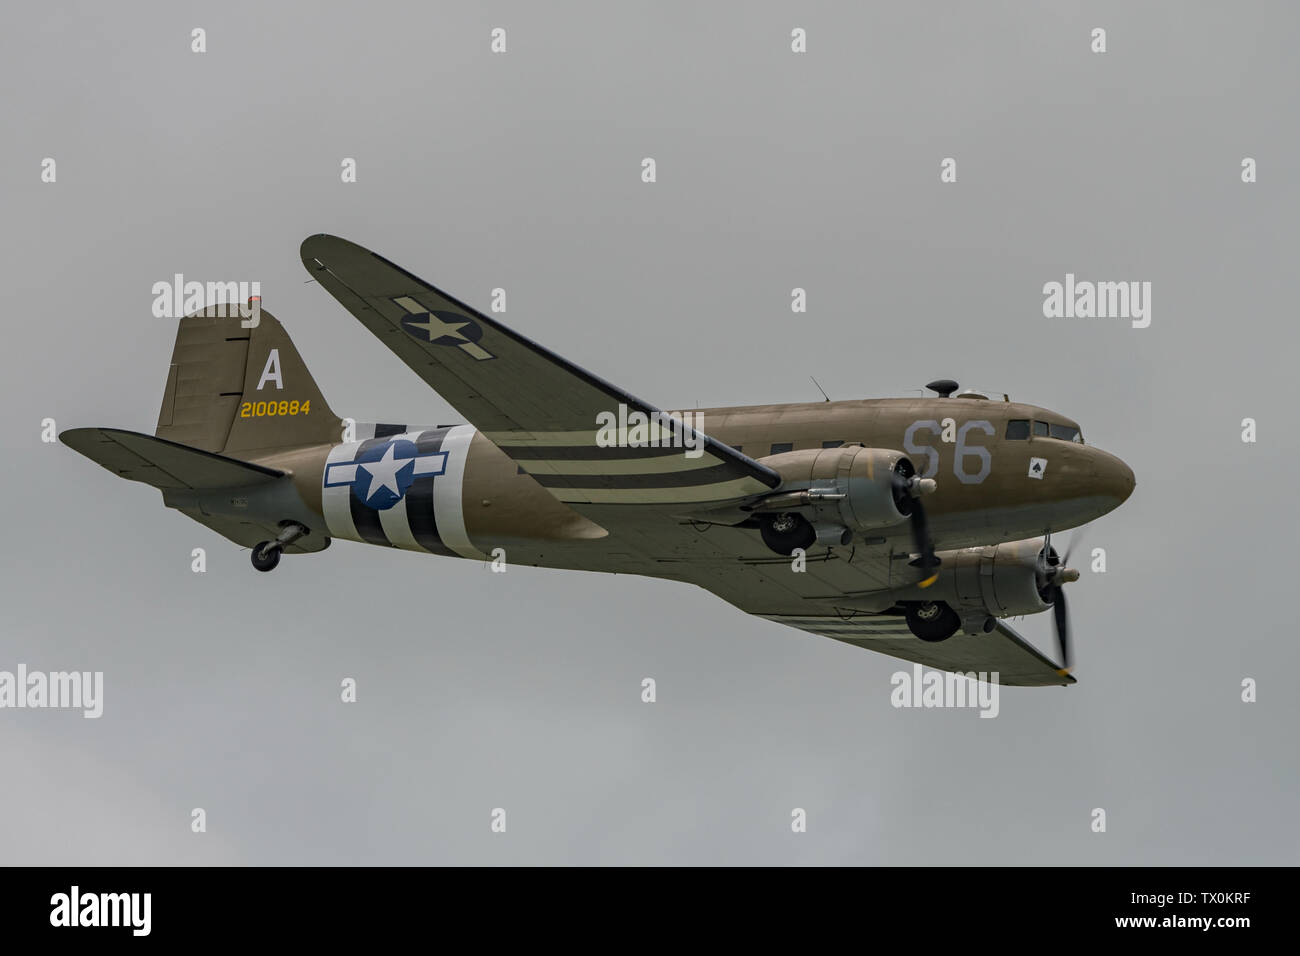 A Douglas C-47 Skytrain WW2 transport aircraft in the sky above Dunsfold Aerodrome, UK for the last ever Wings & Wheels airshow on the 16th June 2019. - Stock Image